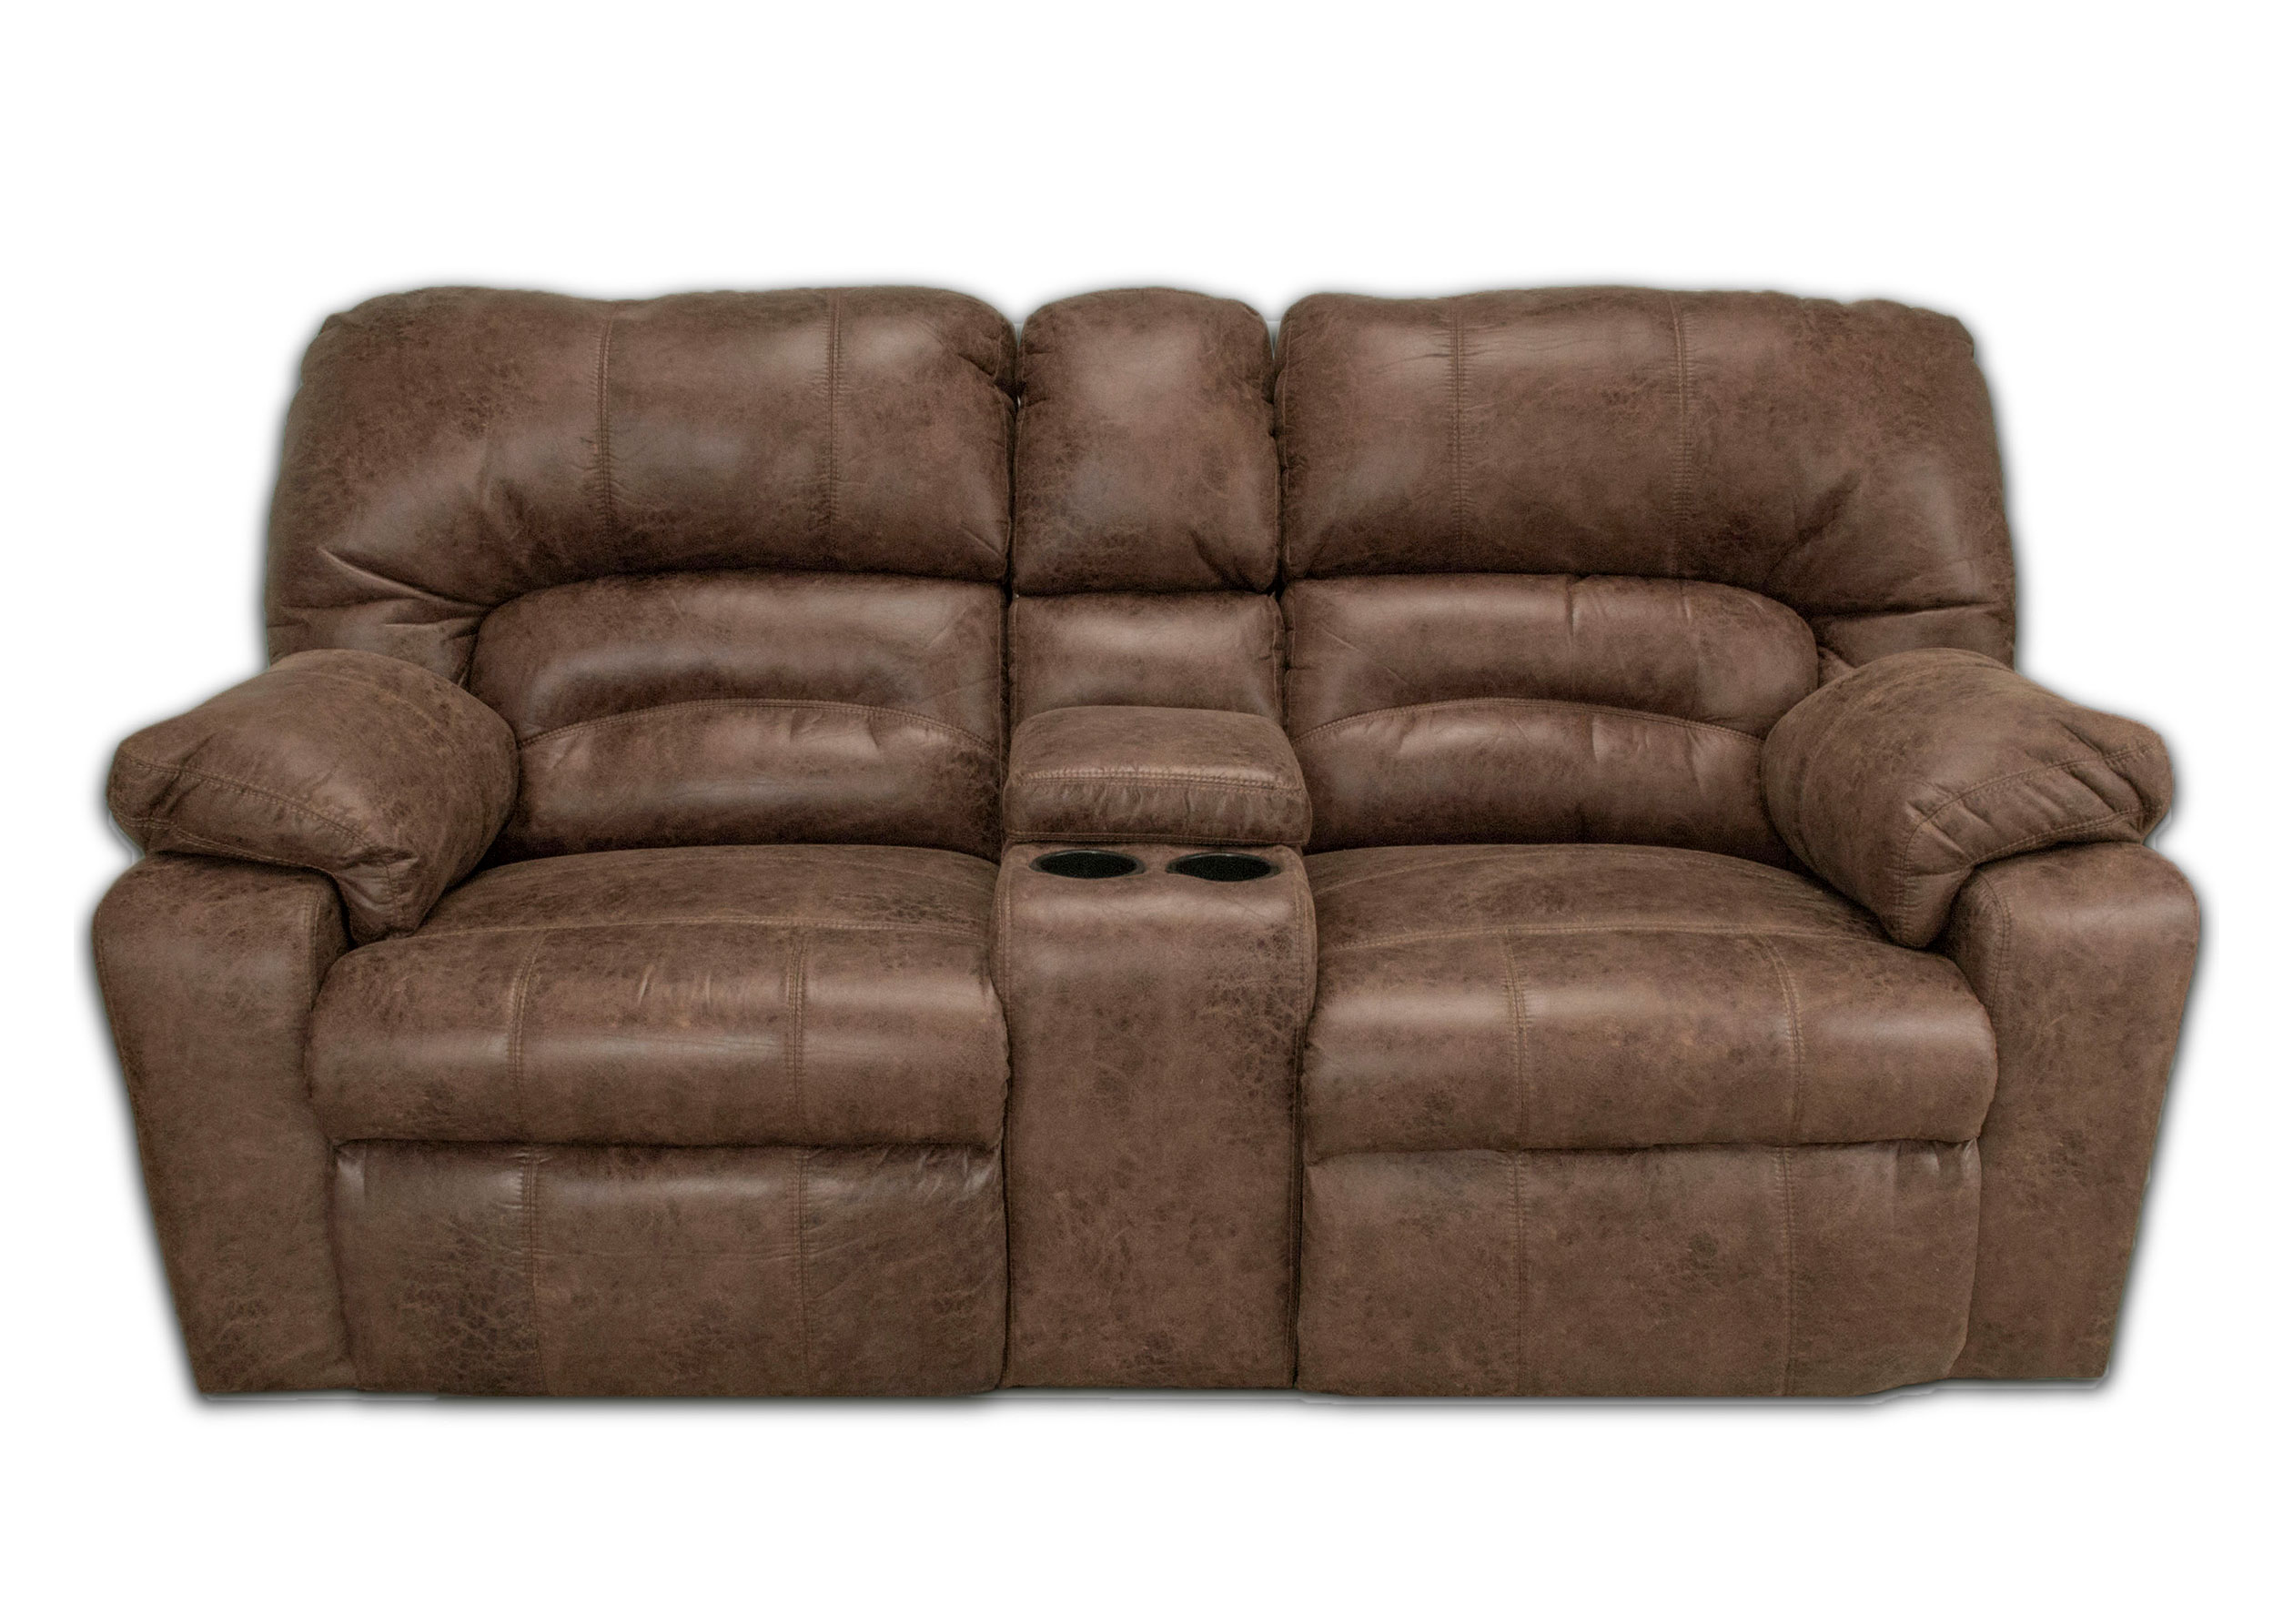 Awesome Dakota Reclining Sofa W Drop Down Table Sofas And Sectionals Beatyapartments Chair Design Images Beatyapartmentscom